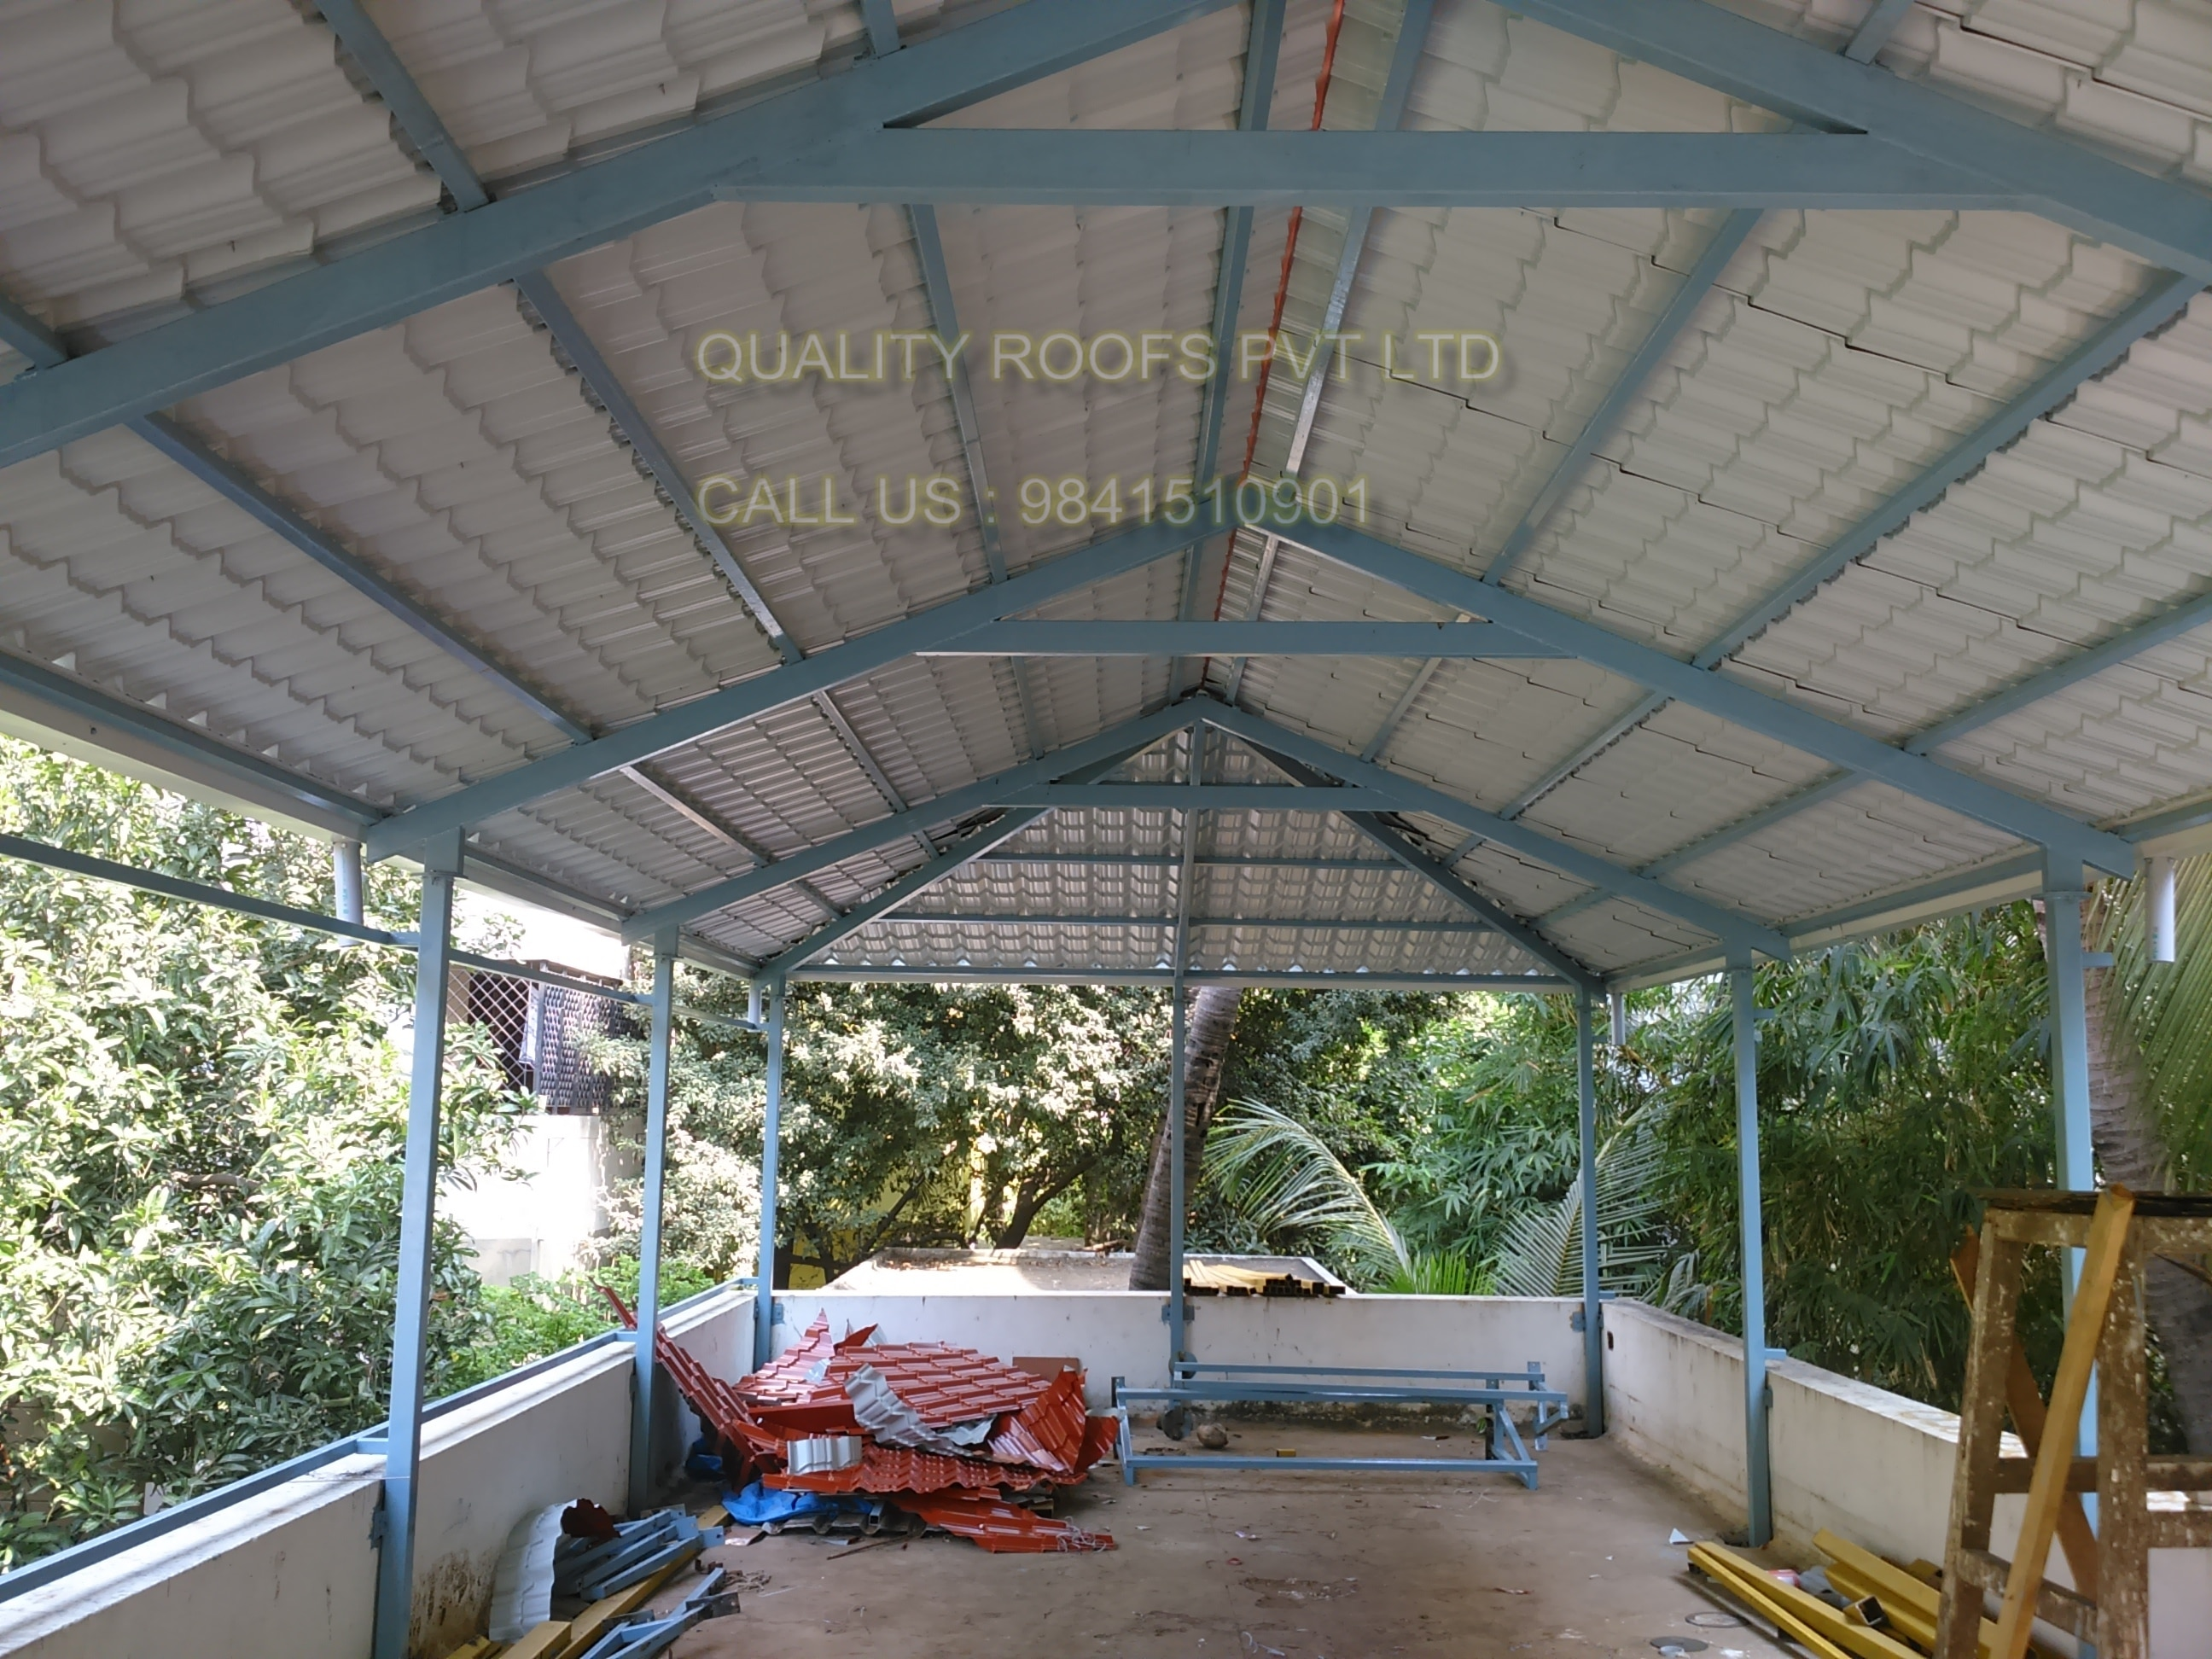 Metal Roofing Sheet Work In Chennai We are | QUALITY ROOFS PVT LTD